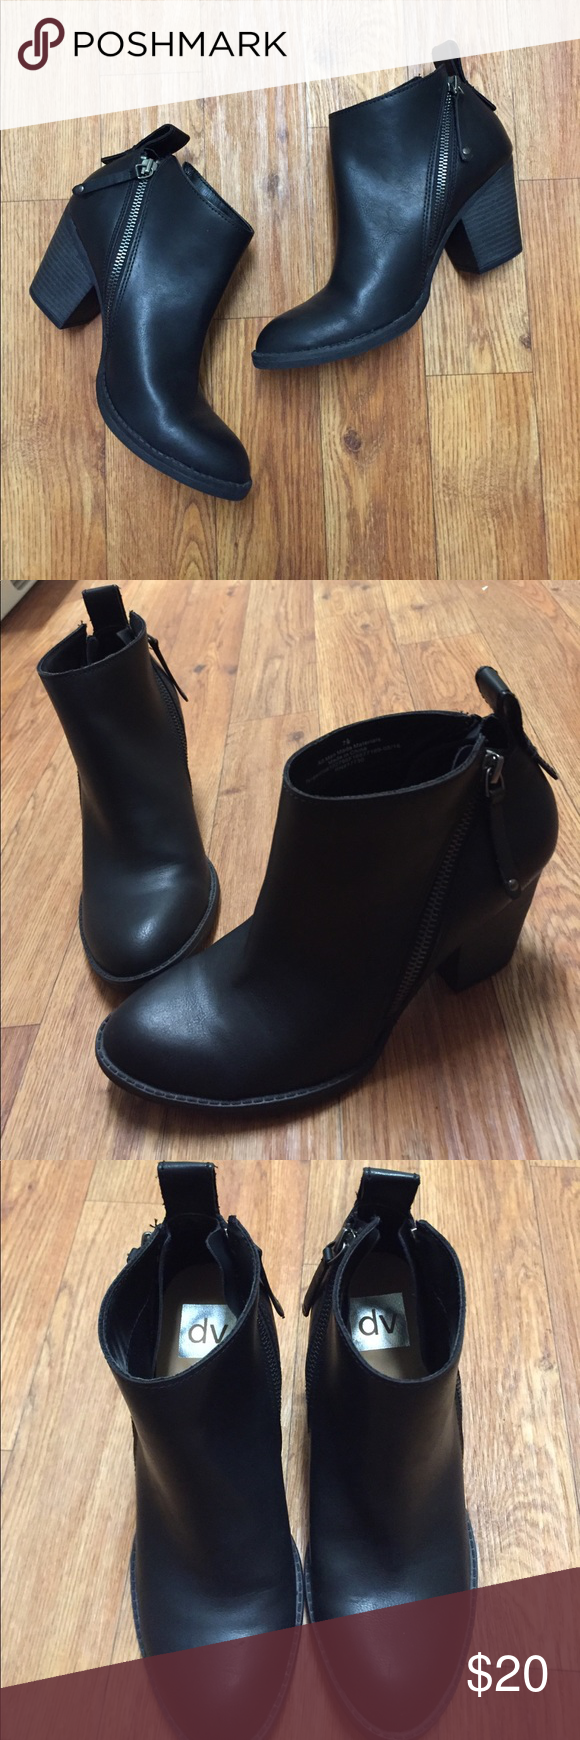 f140350db403 DV Jameson Double Zip Booties 7.5 Black and new without tags. Size 7.5  these are DV from target. DV by Dolce Vita Shoes Ankle Boots   Booties